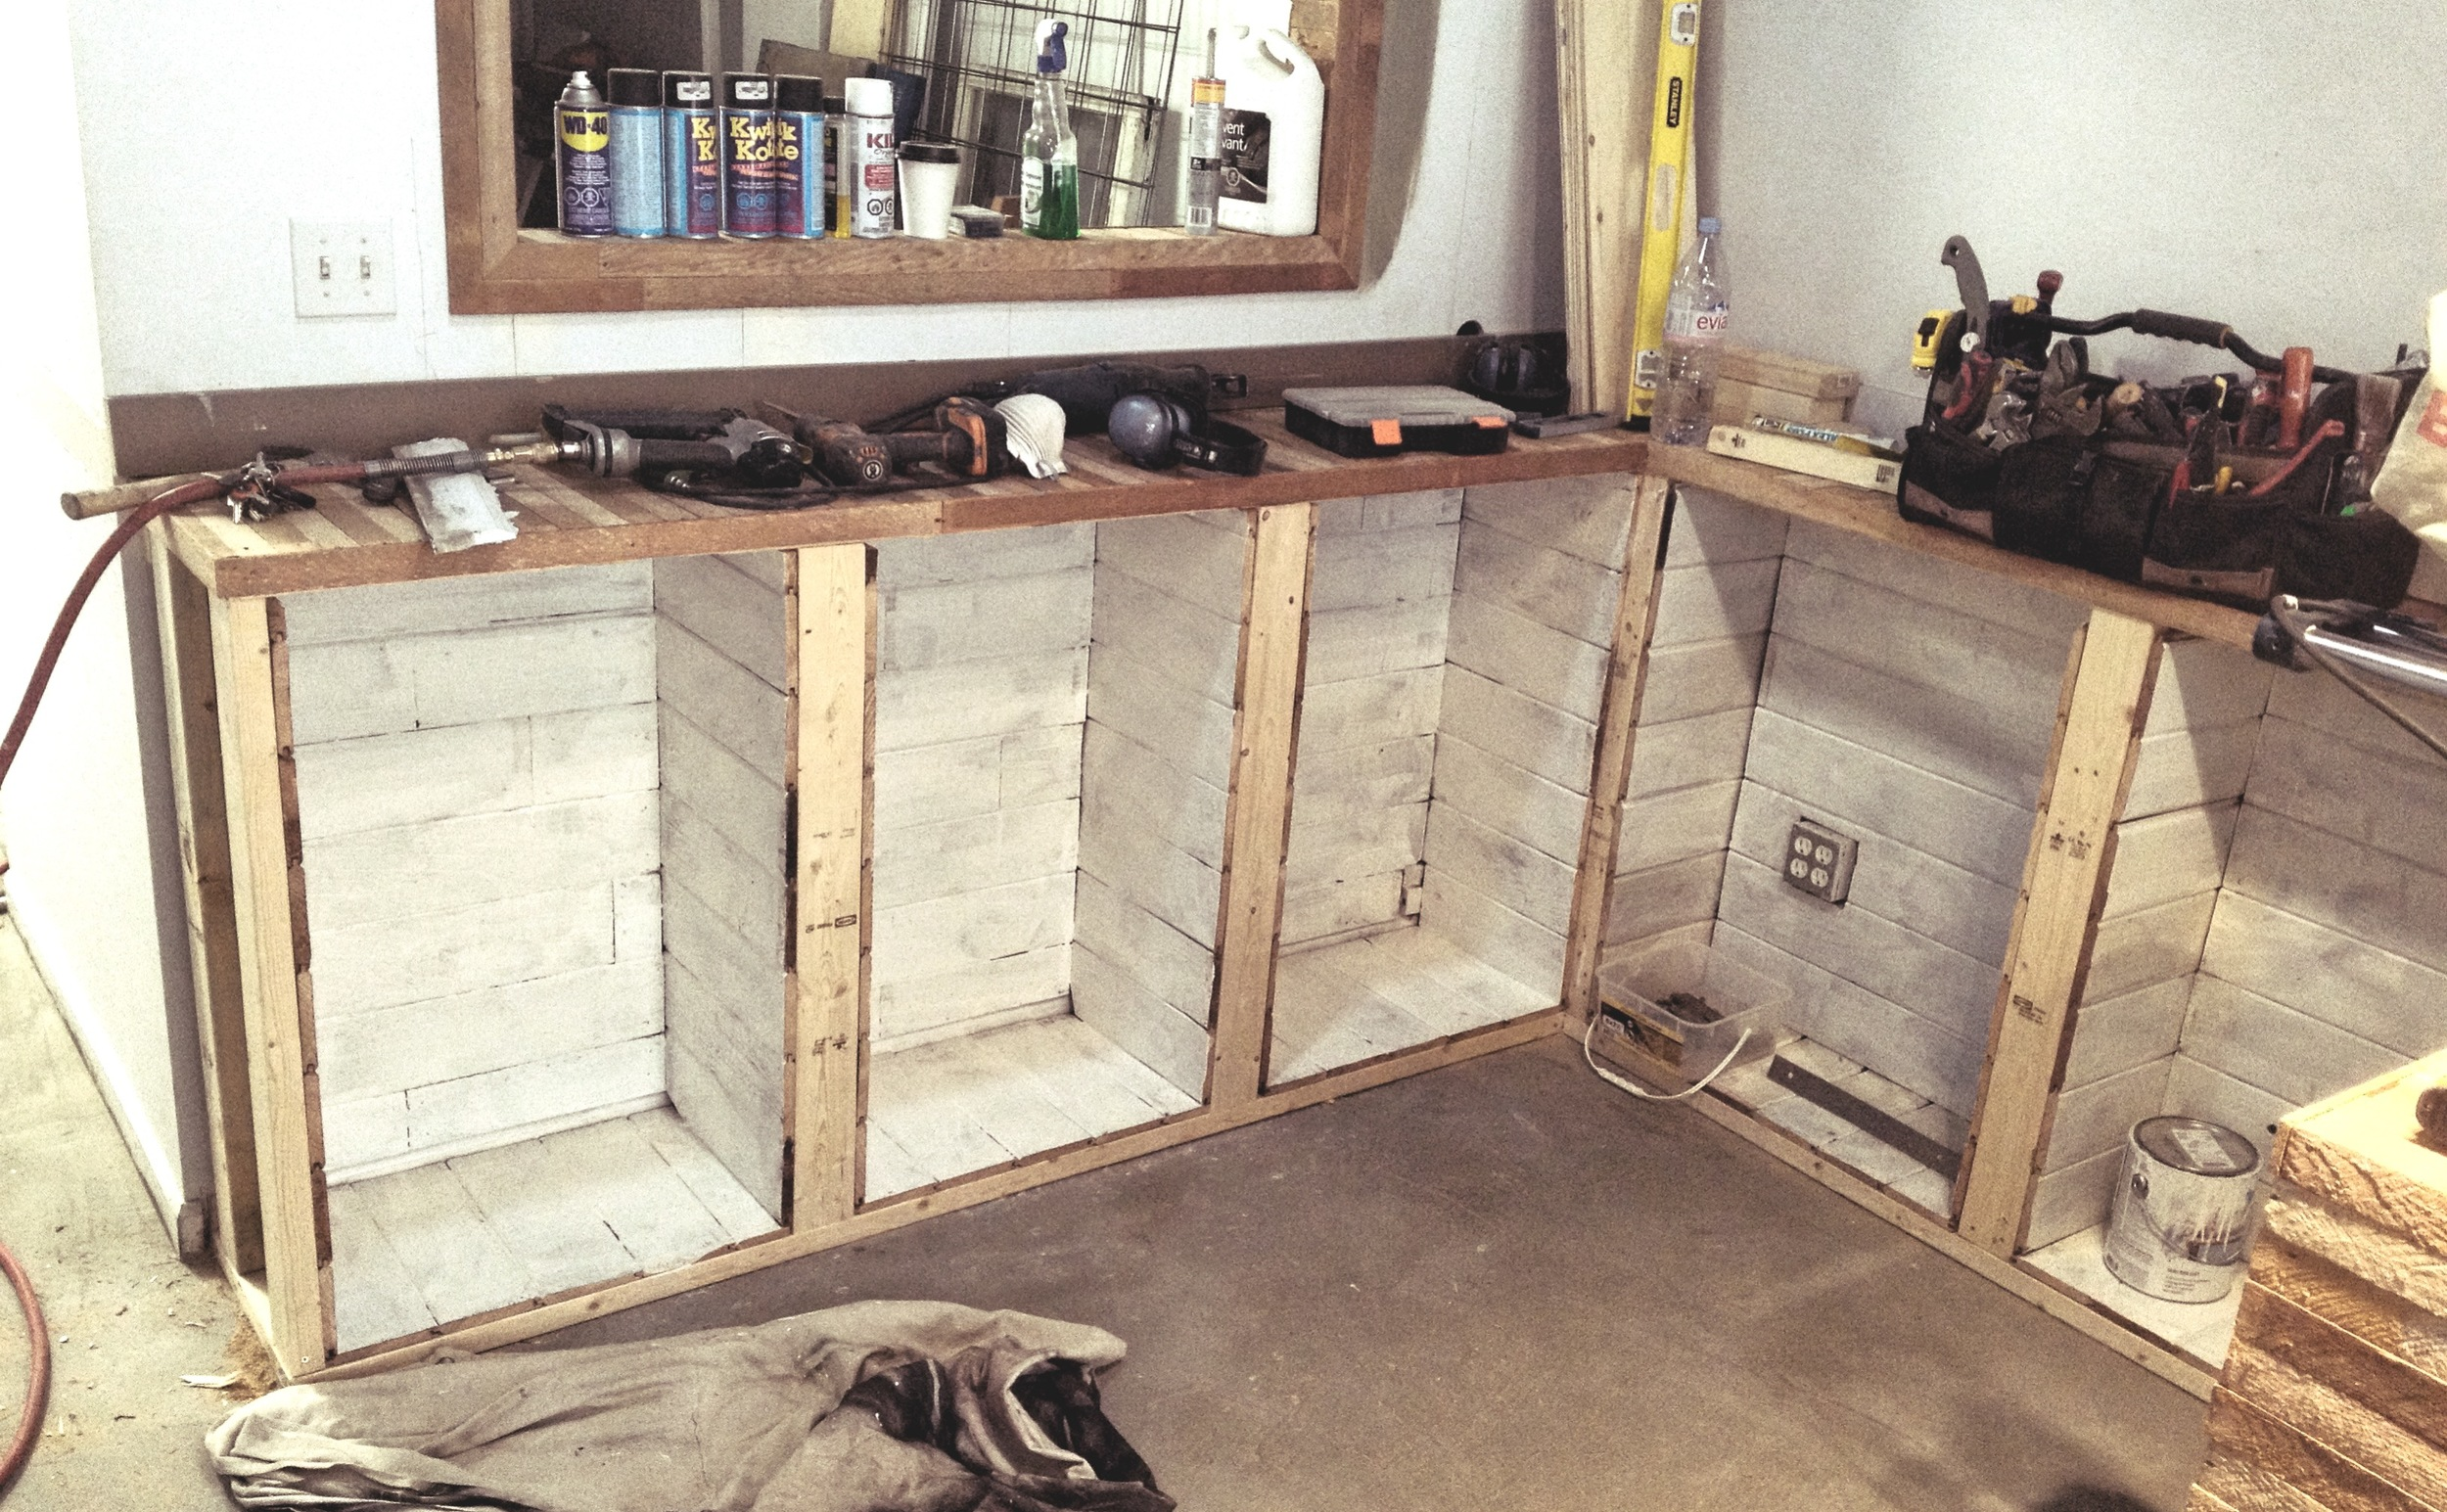 Custom interior shelving hand-crafted from salvaged lath and fencing.